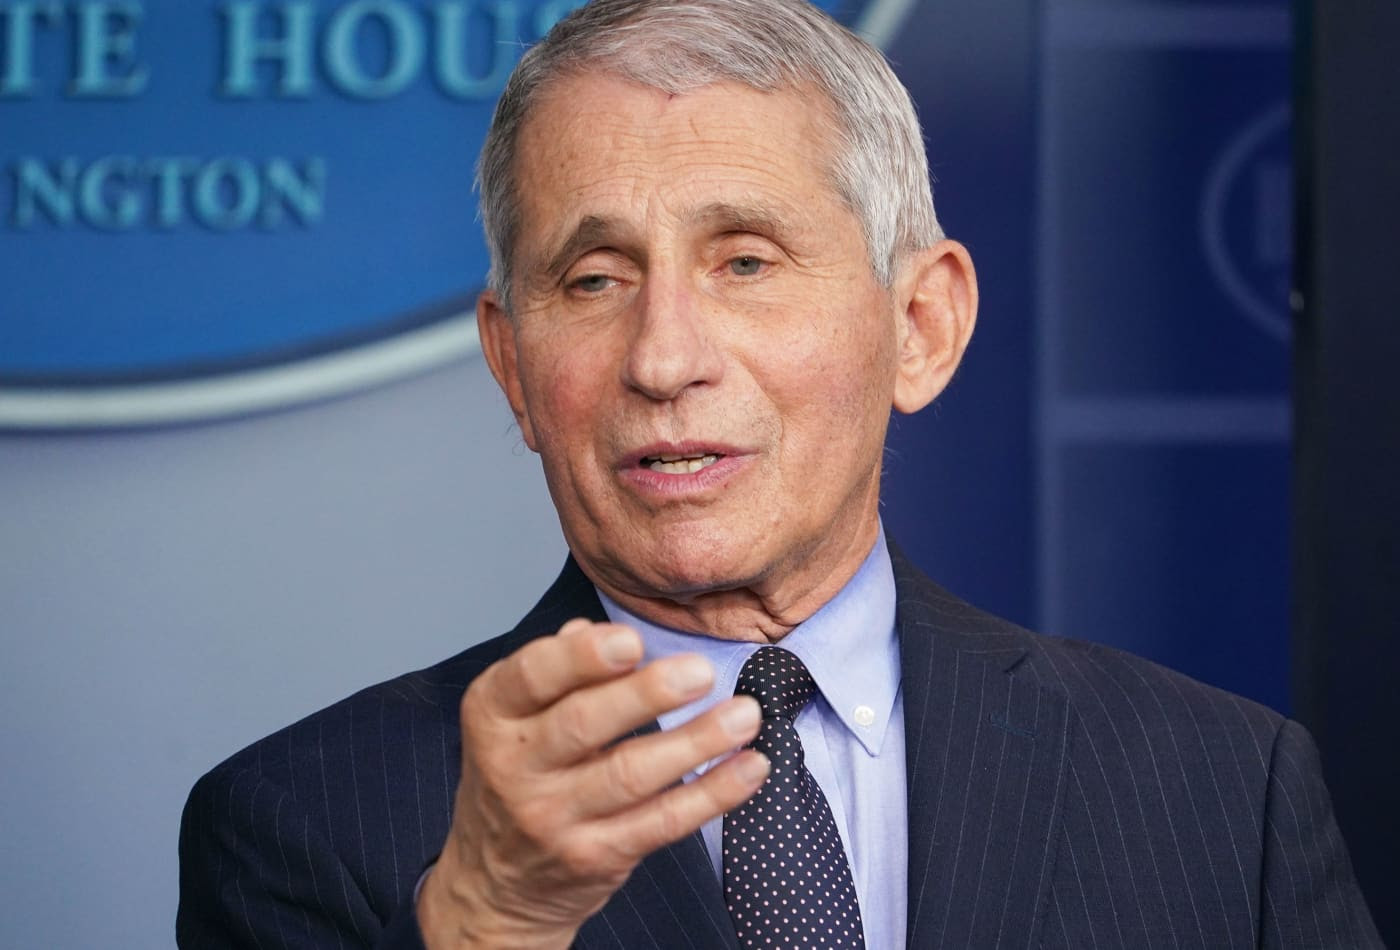 Dr. Fauci: This is the updated vaccine timeline you need to be aware of